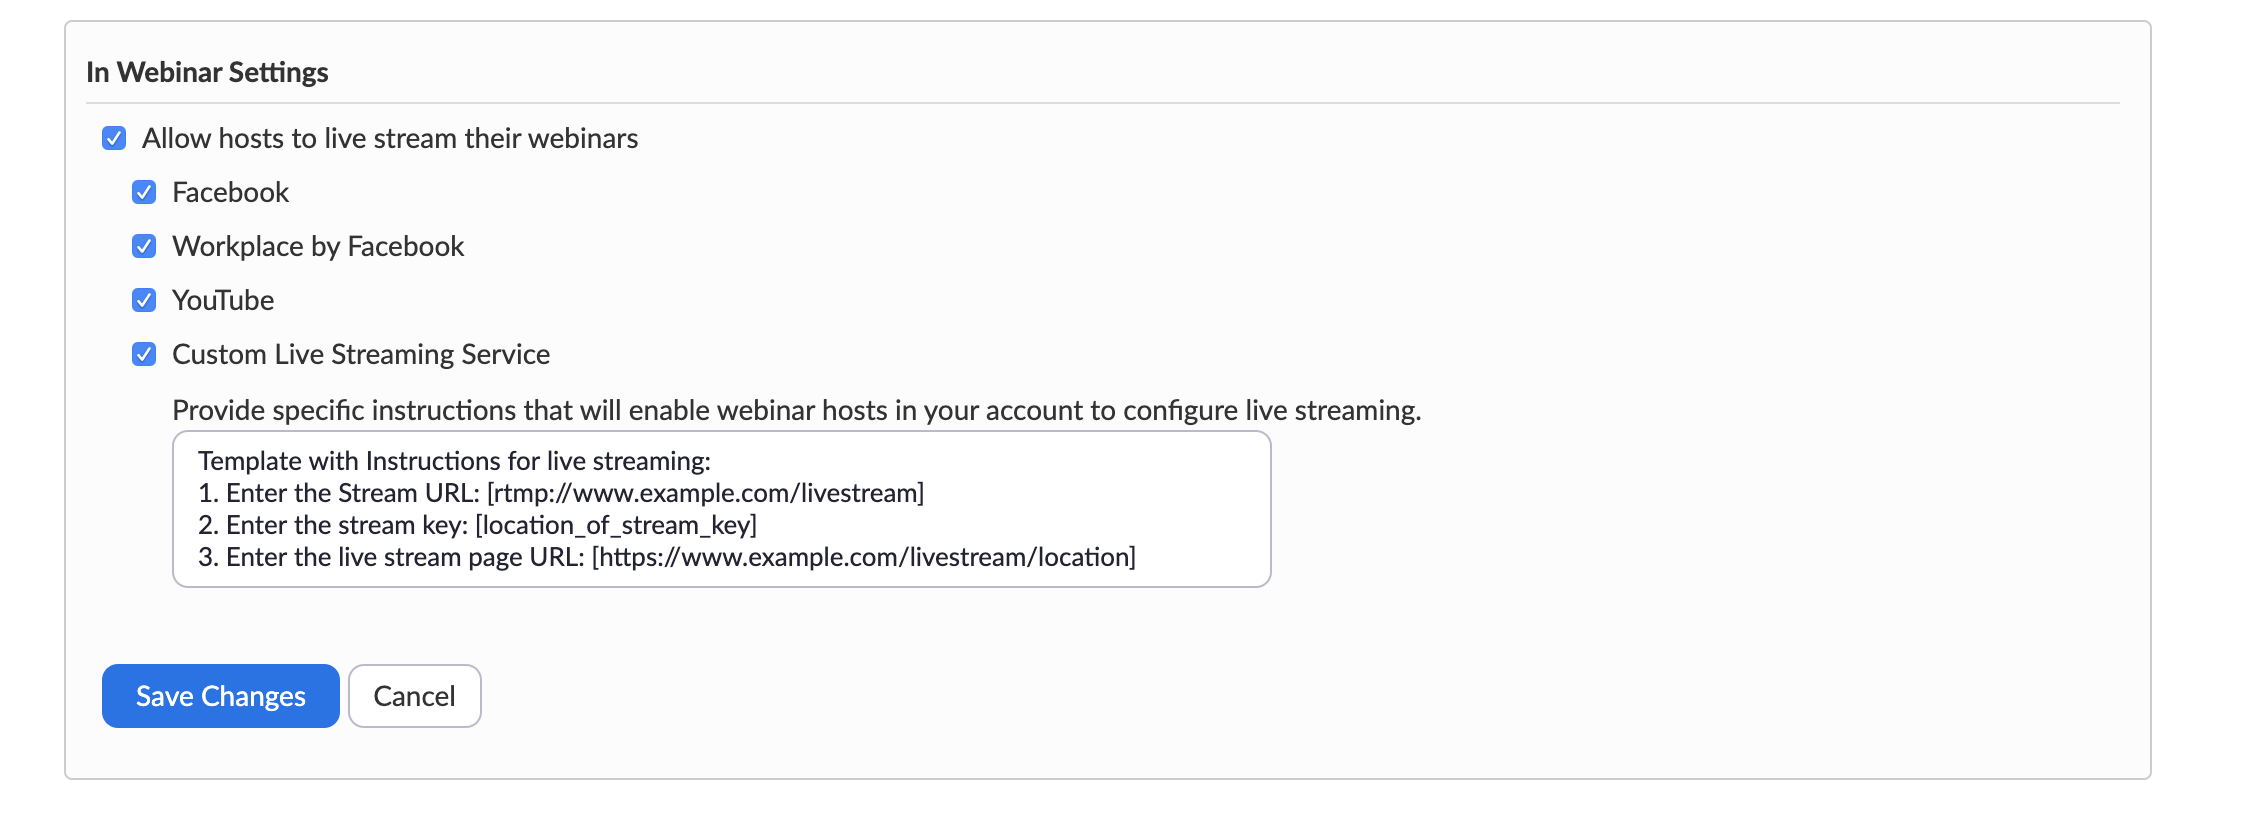 In Webinar Settings, where one can select allow live streaming and custom live streaming service